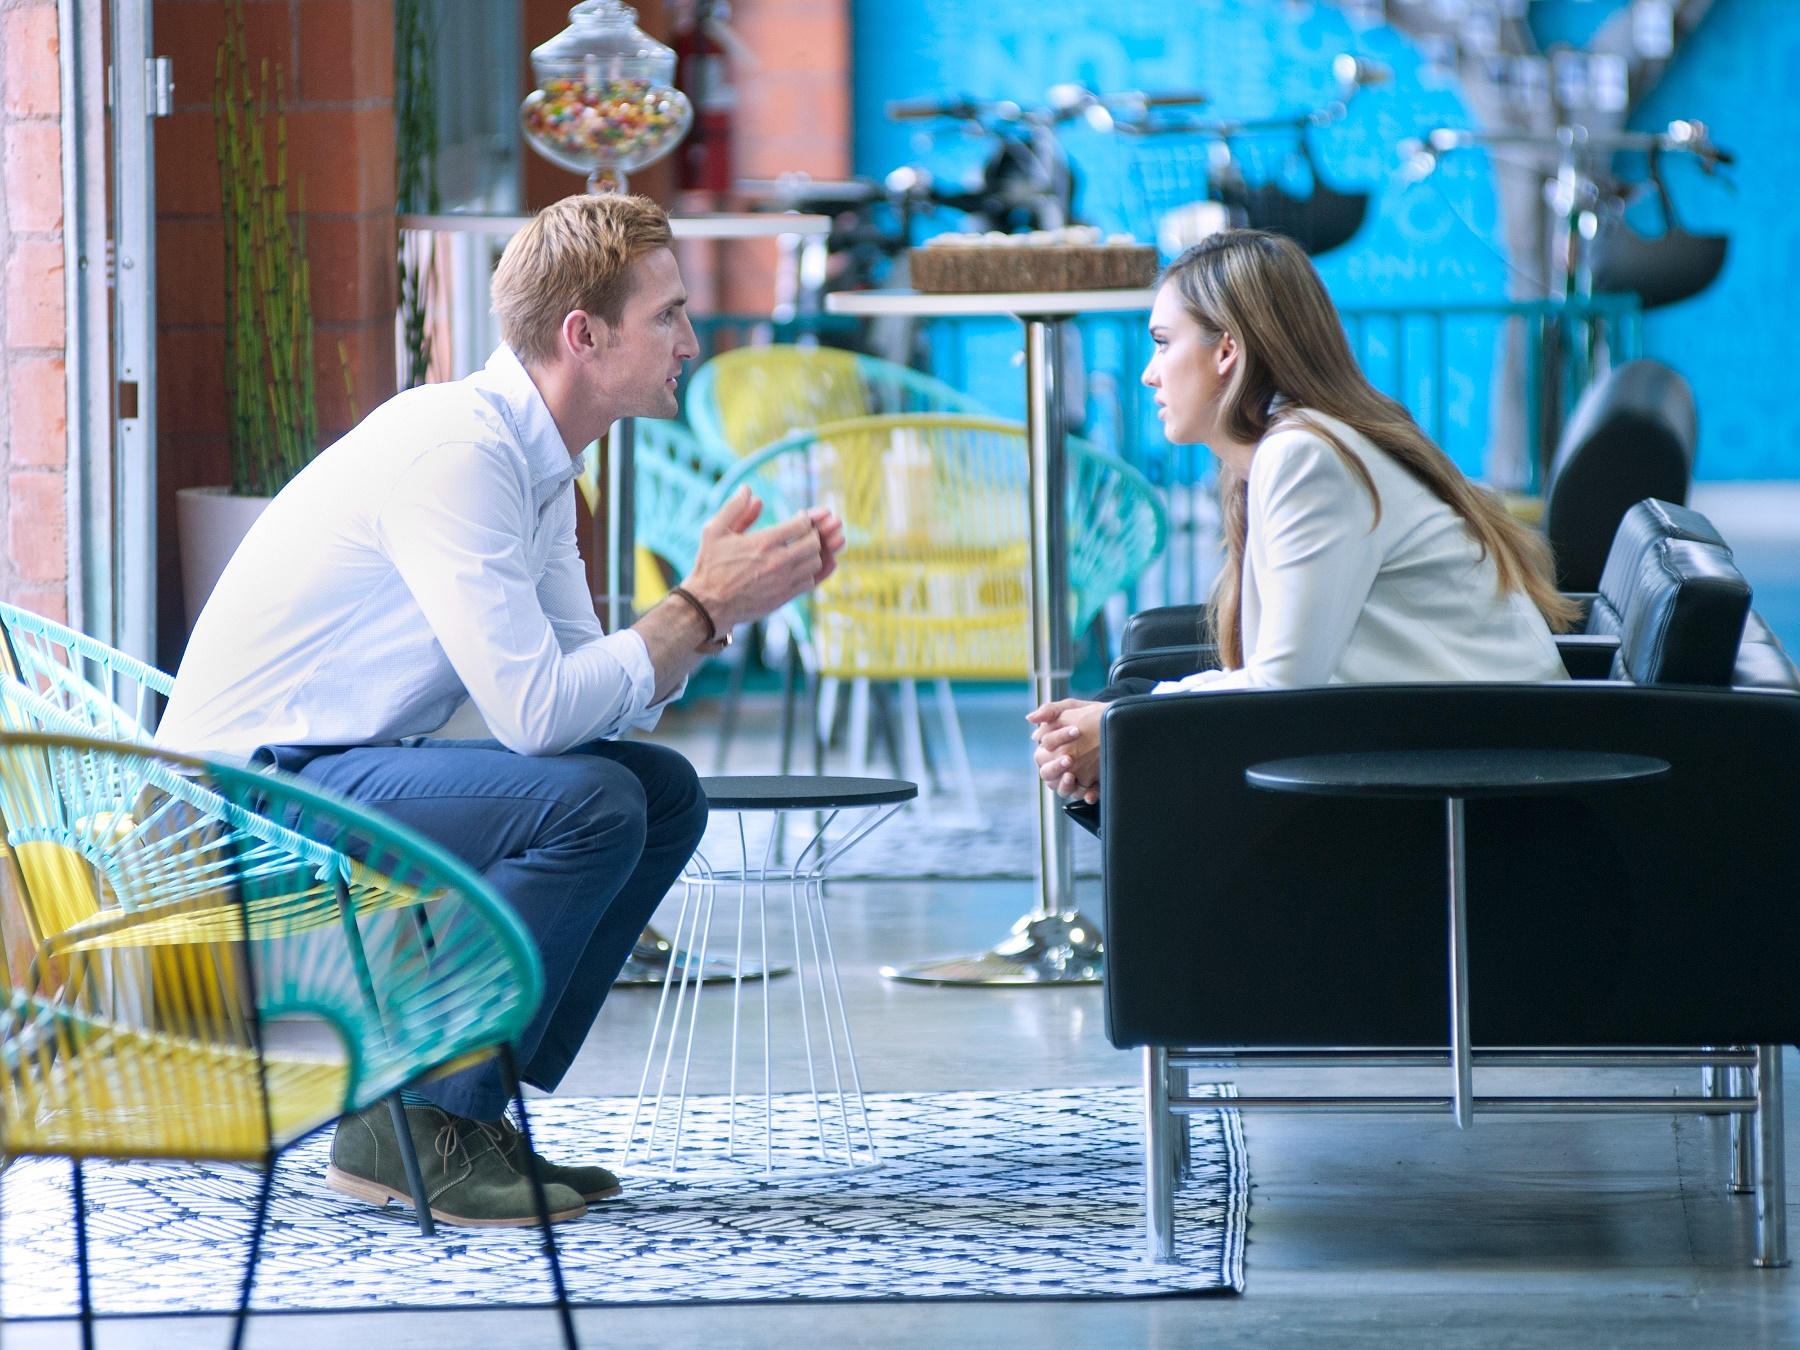 """Correspondent Jessica Alba speaks with Christopher Gavigan, founder of The Honest Company, from the segment """"Climate Corps."""" (Photo Credit: The Years Project/Courtesy of SHOWTIME)"""